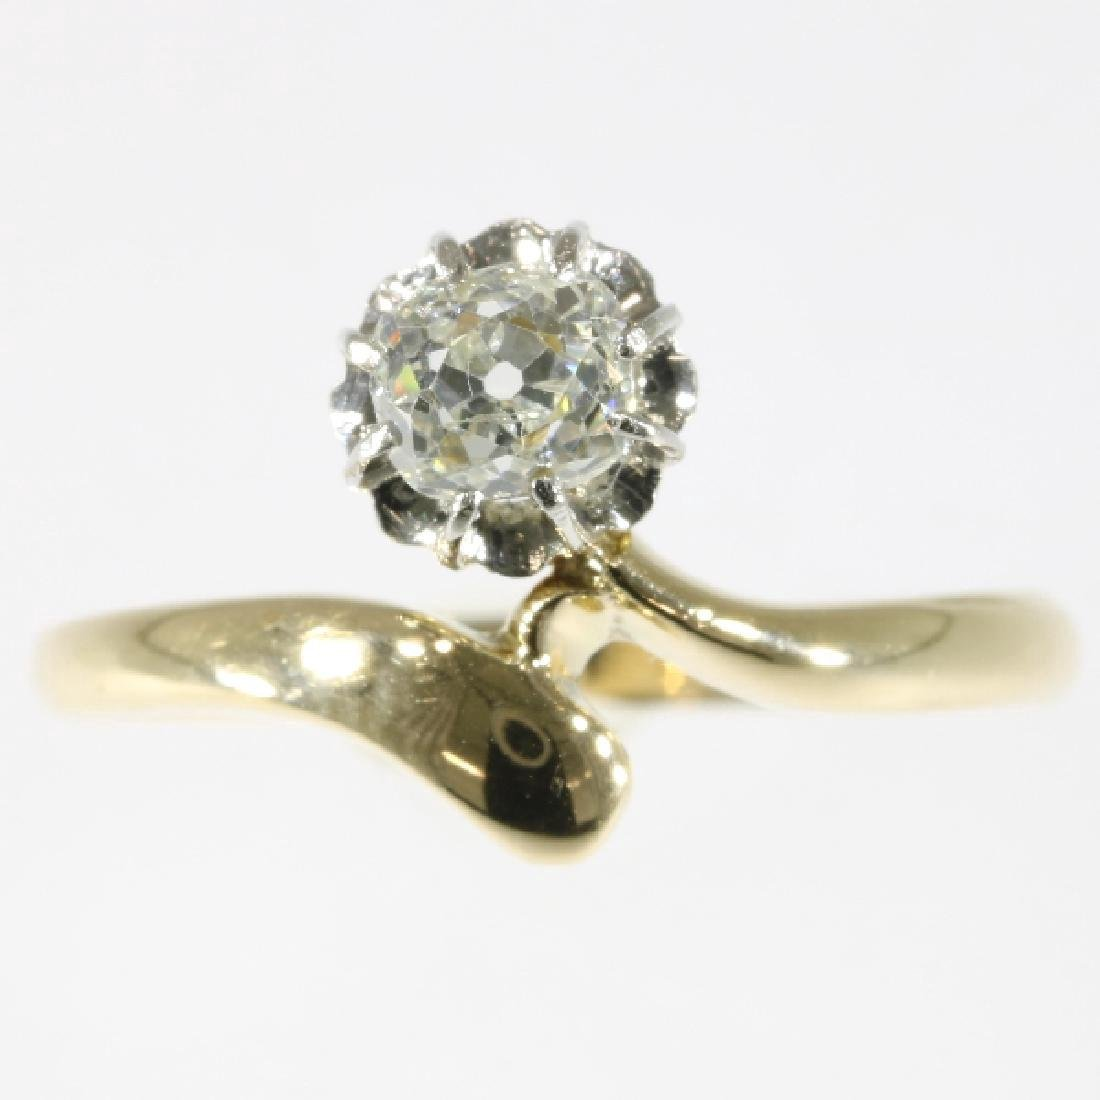 Antique Belle Epoque 14K Gold Diamond Ring, .4ct - 2